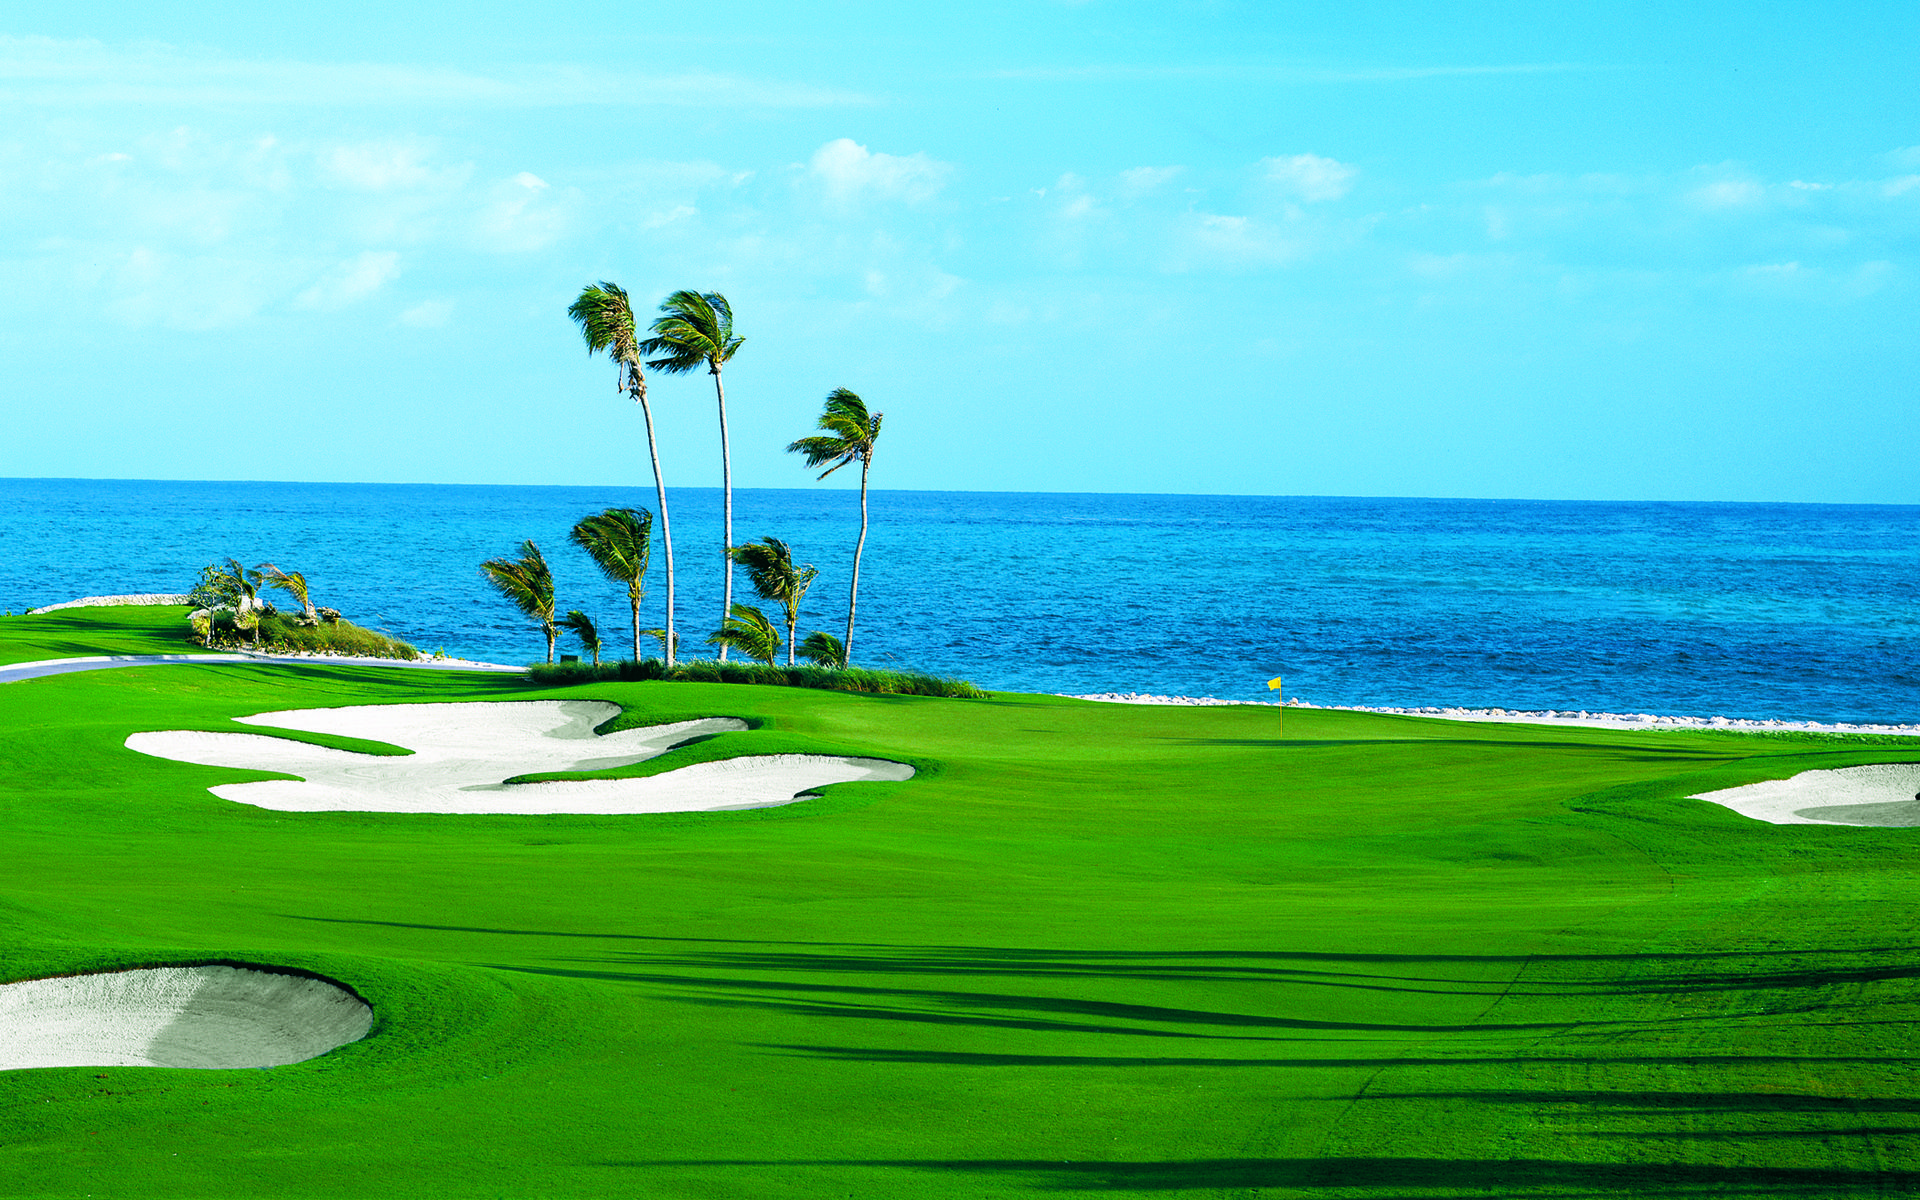 golf courses background